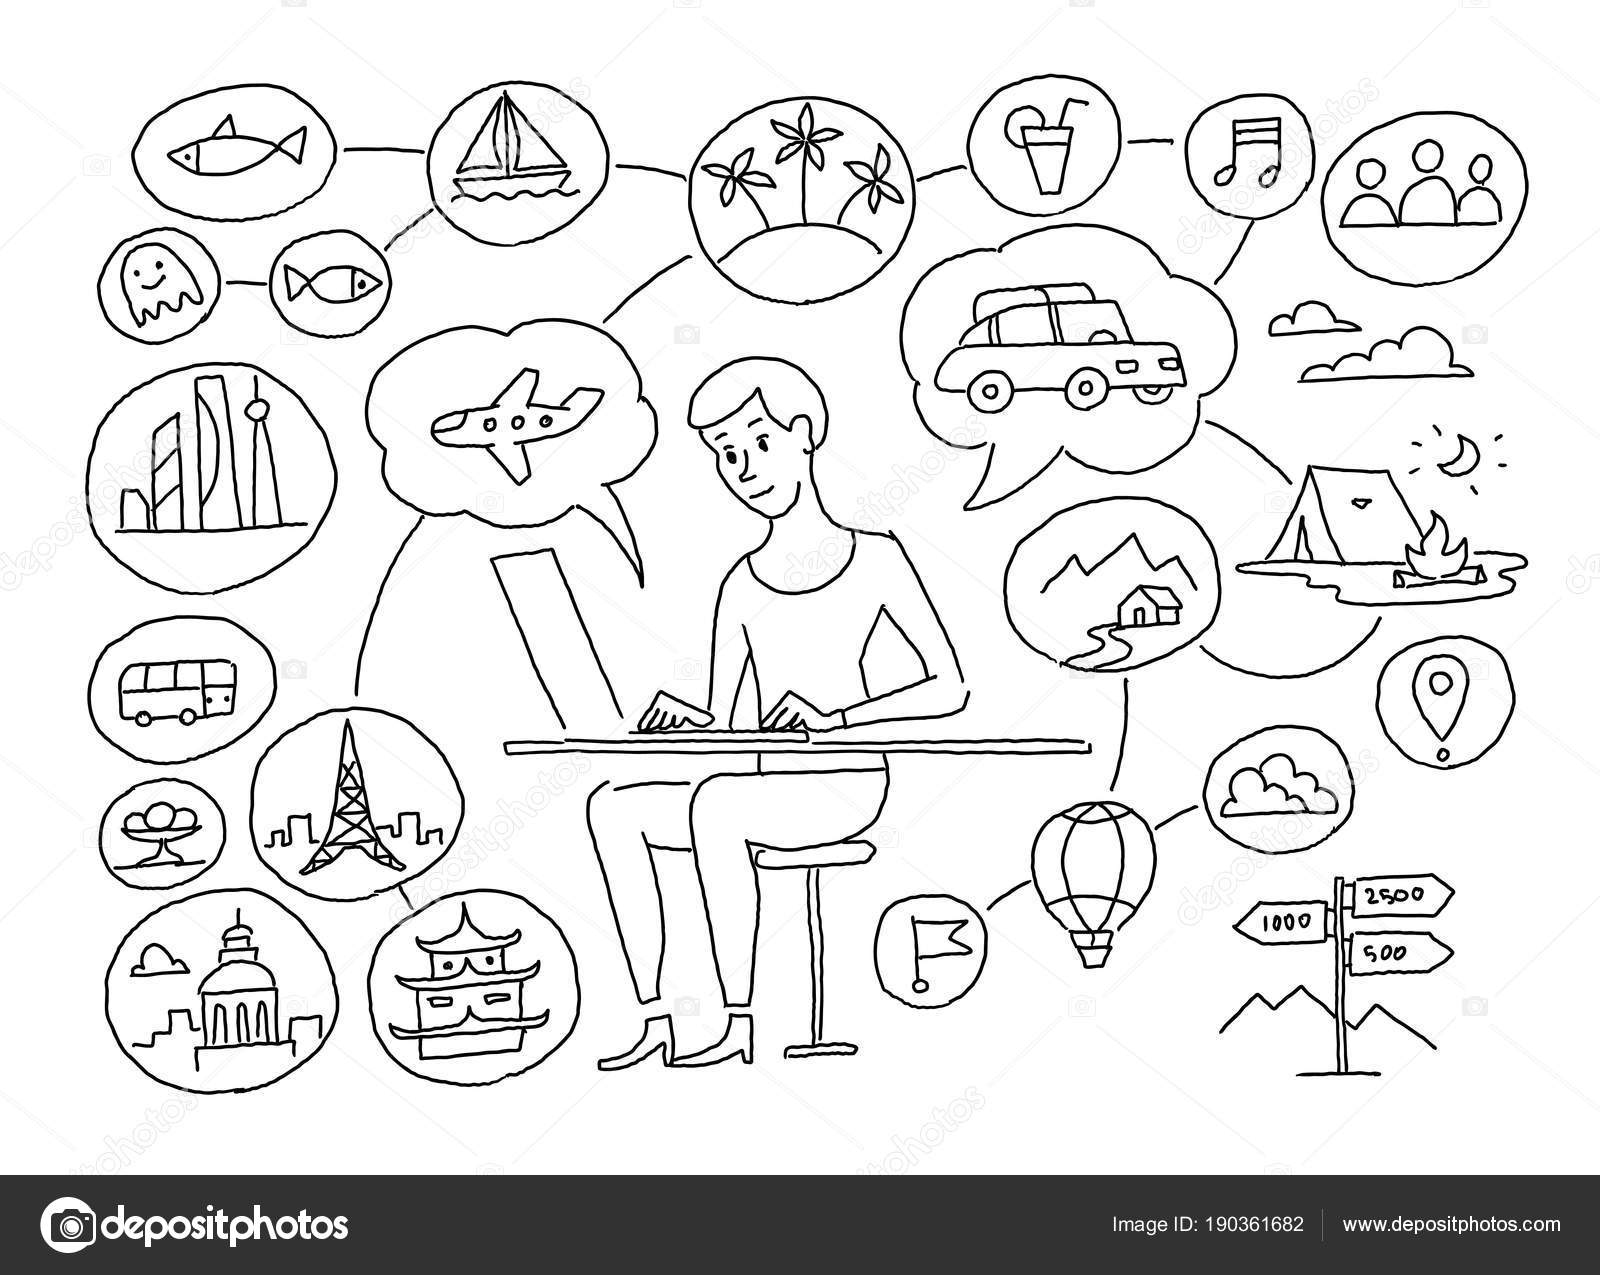 Travel Agent Thoughts About The Road Plane Transport Resort Hand Drawn Black Line Vector Stock Clipart Illustration By Ilyakalinin